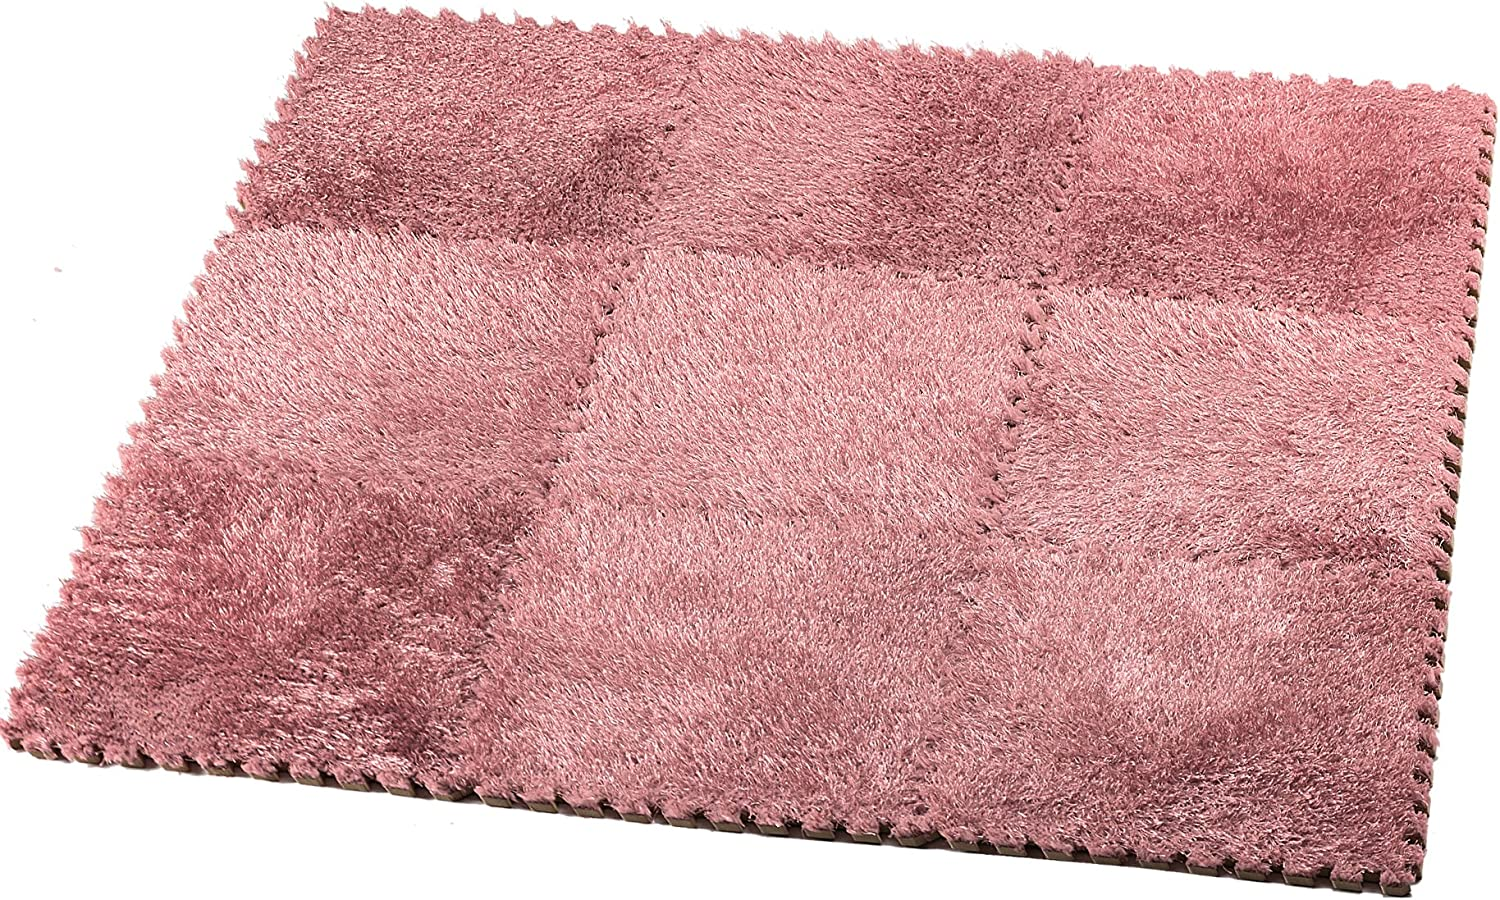 HemingWeigh trust Fuzzy Area Rug - 9 Classic for Id Fluffy Kids Tiles Carpet